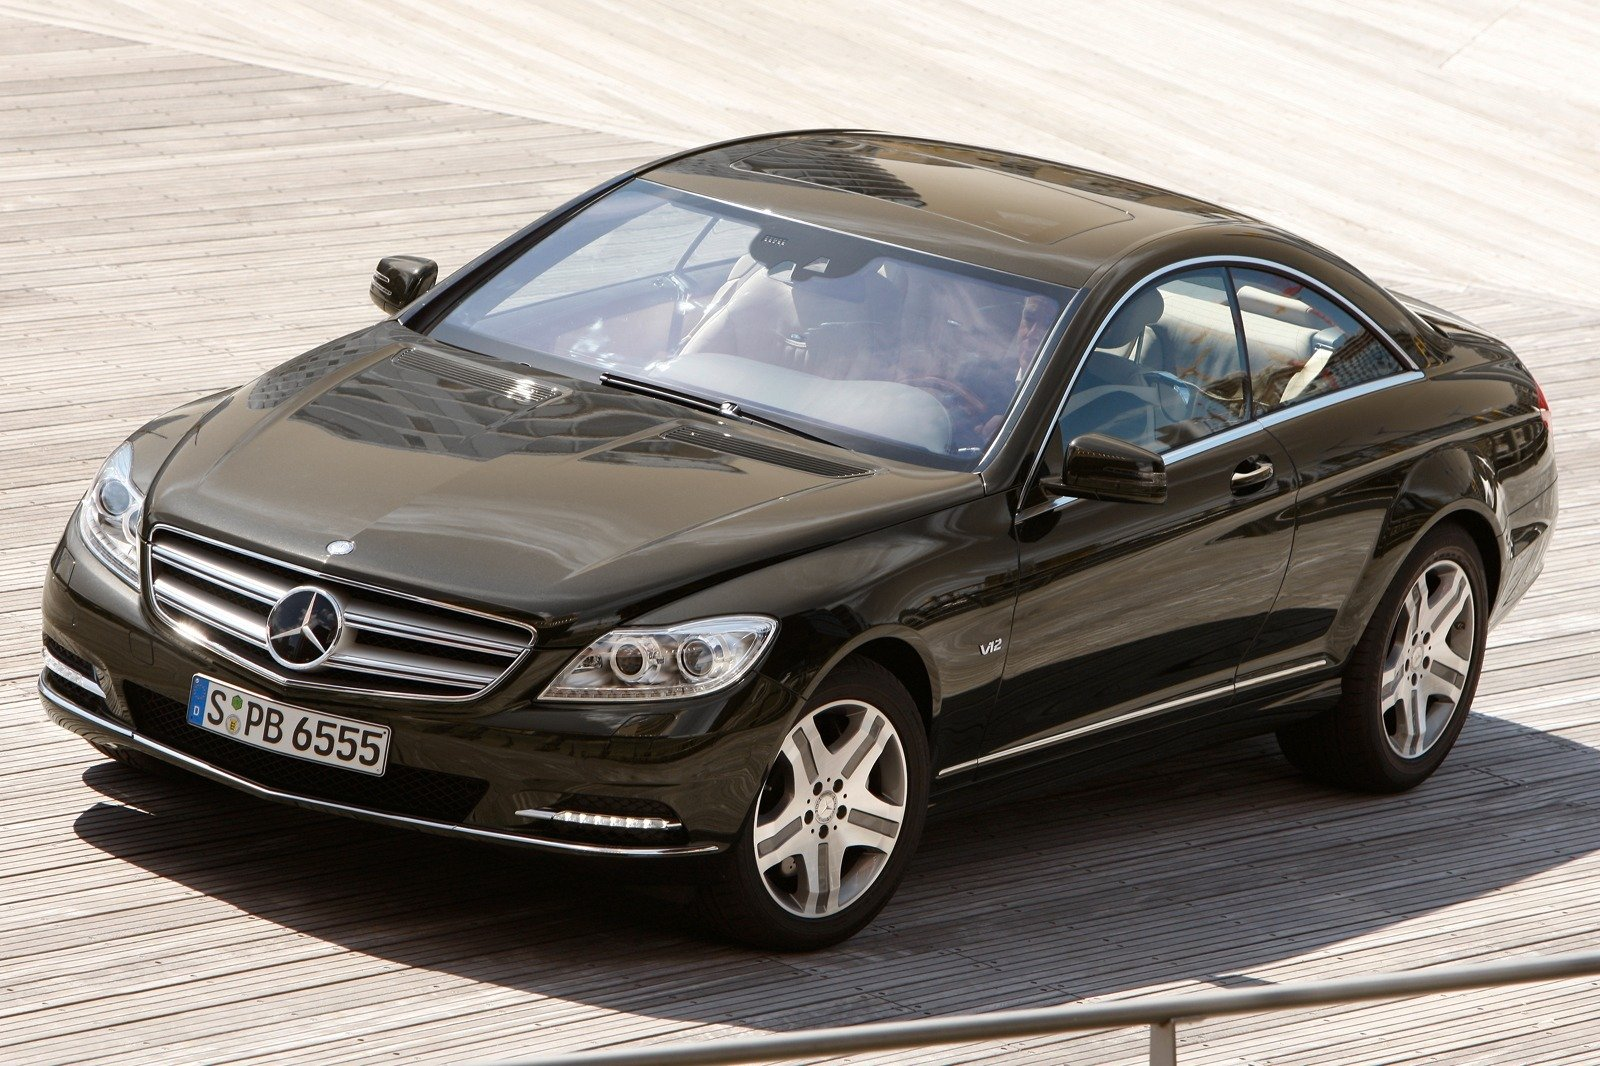 2011 mercedes cl class review top speed. Black Bedroom Furniture Sets. Home Design Ideas